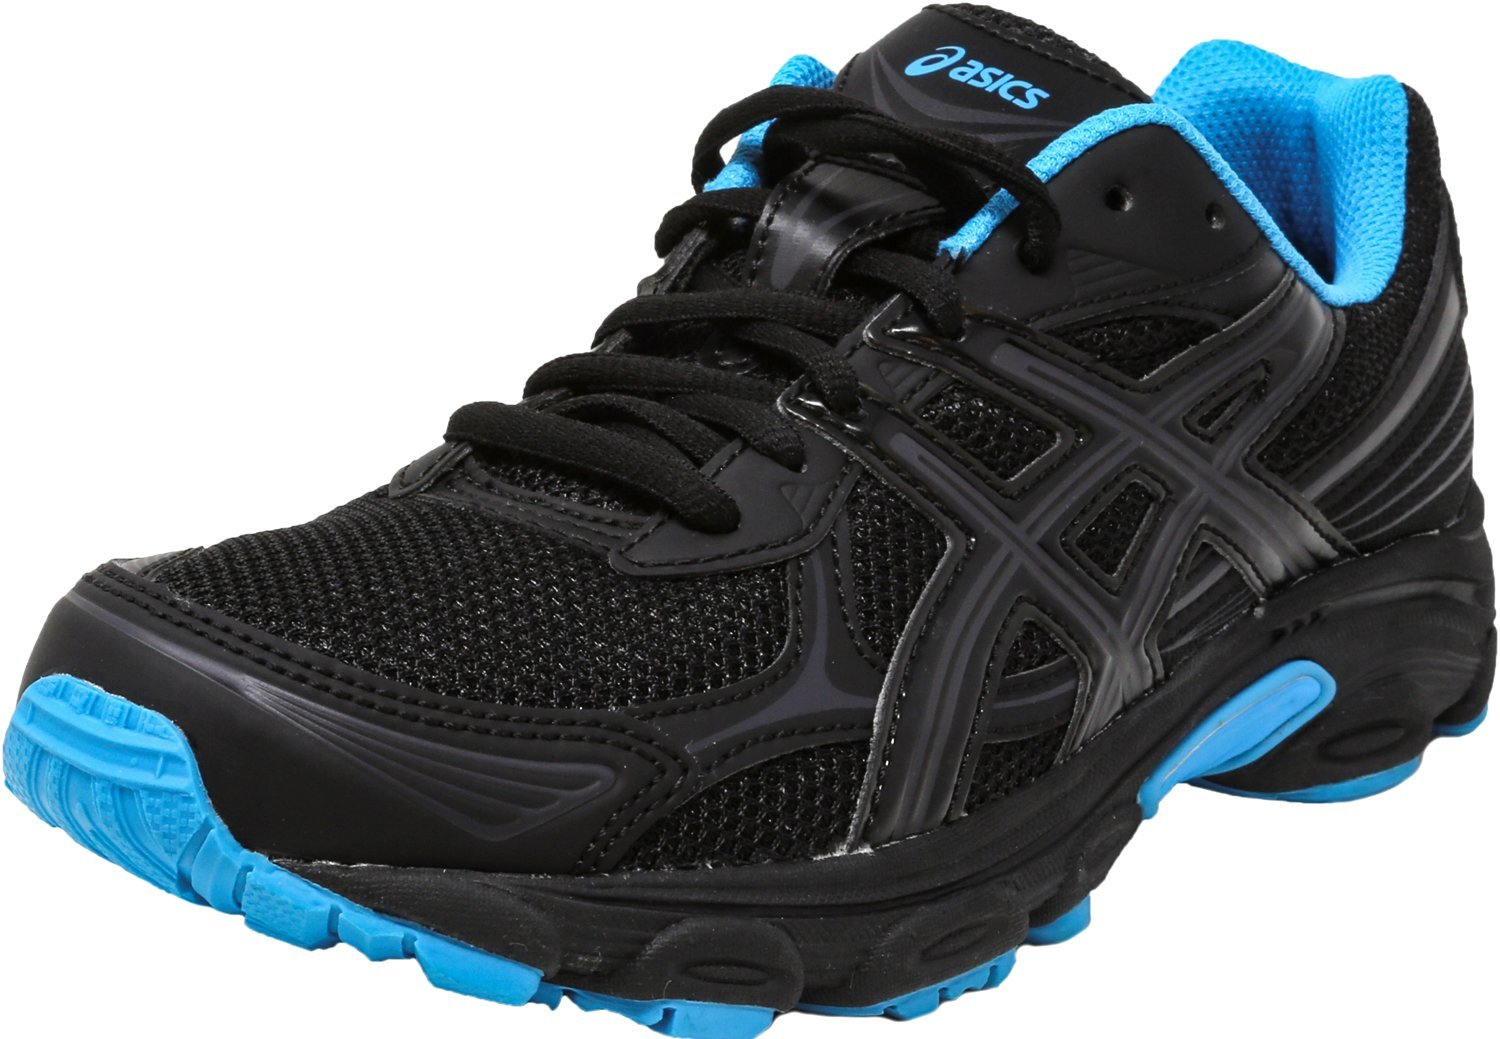 ASICS Mens Gel Vanisher US|Black/Phantom/Island Running Shoes B071F9WKTG 9.5 B(M) US|Black/Phantom/Island Vanisher Blue 37ee03